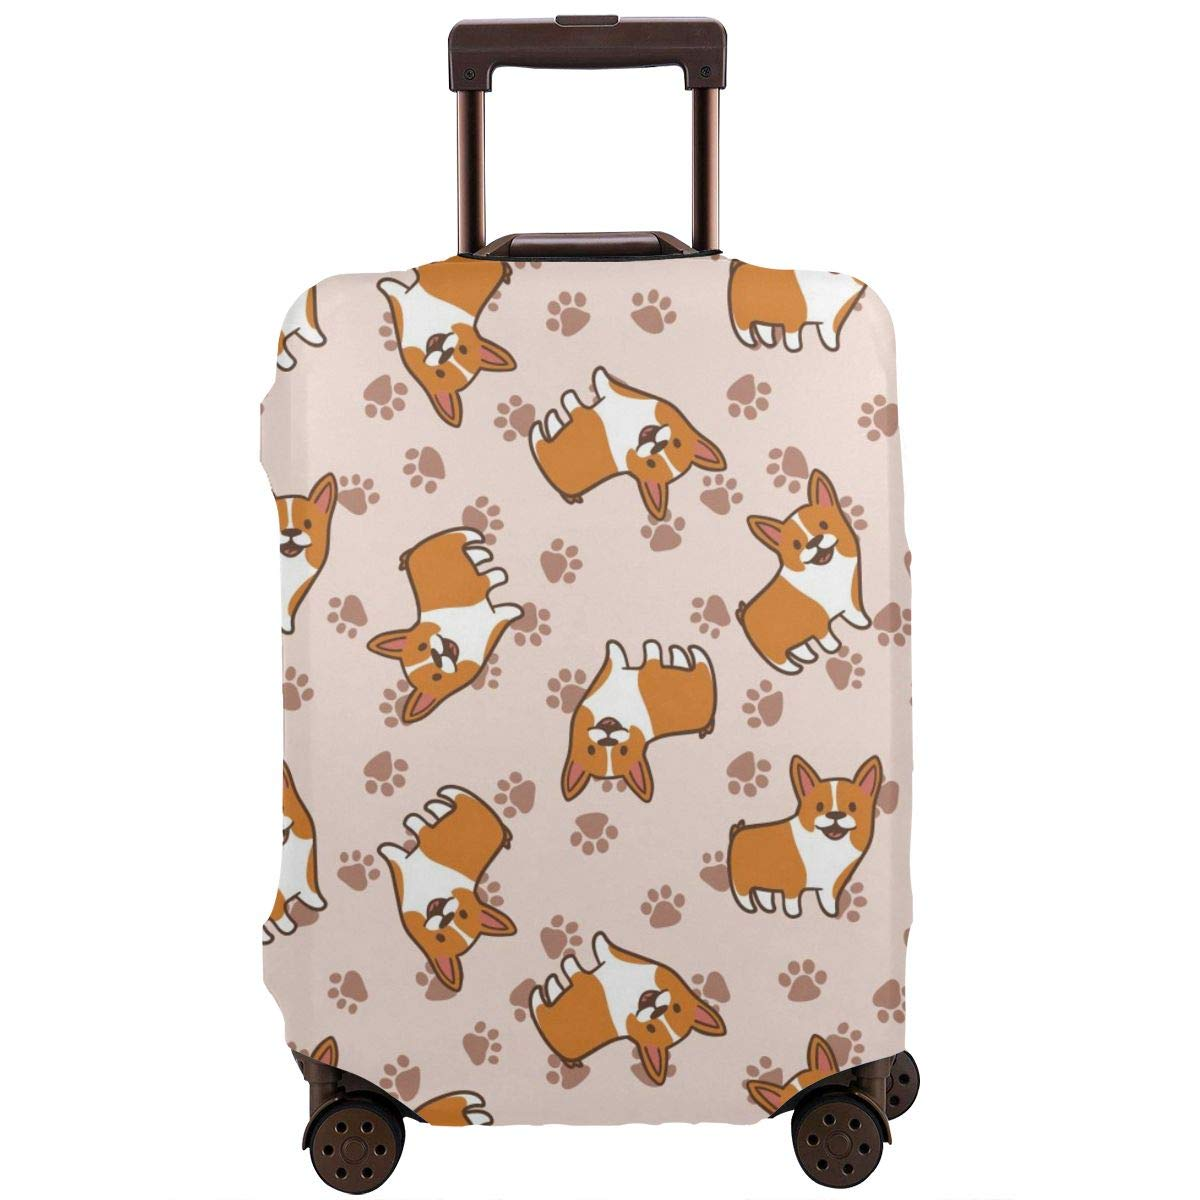 Cute Corgi Paw Print Travel Luggage Cover Suitcase Protector Washable Zipper Baggage Cover